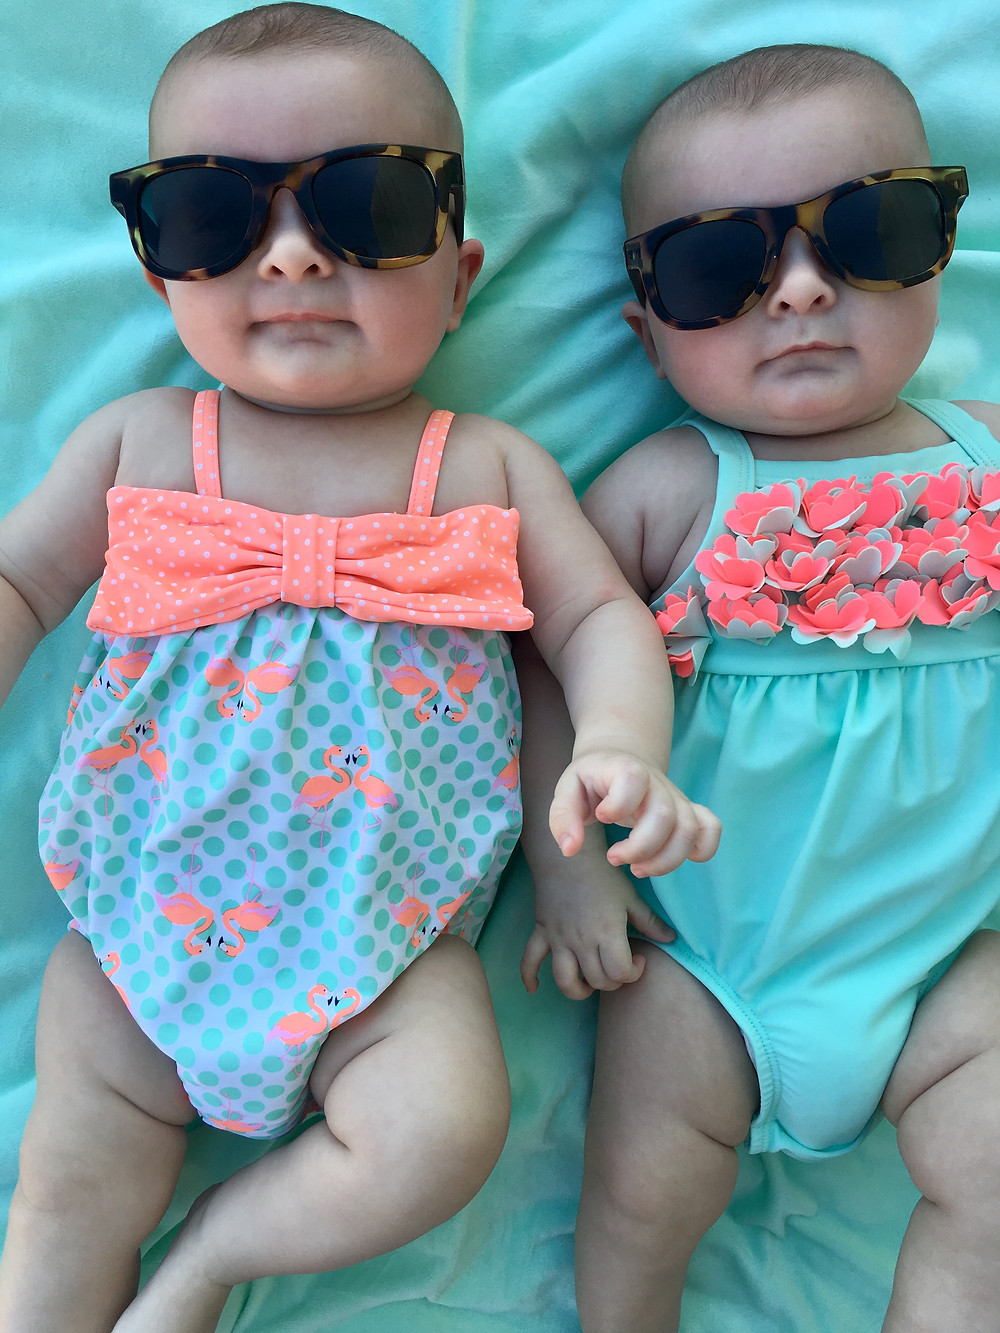 Twin girls in sunglasses and swimsuits